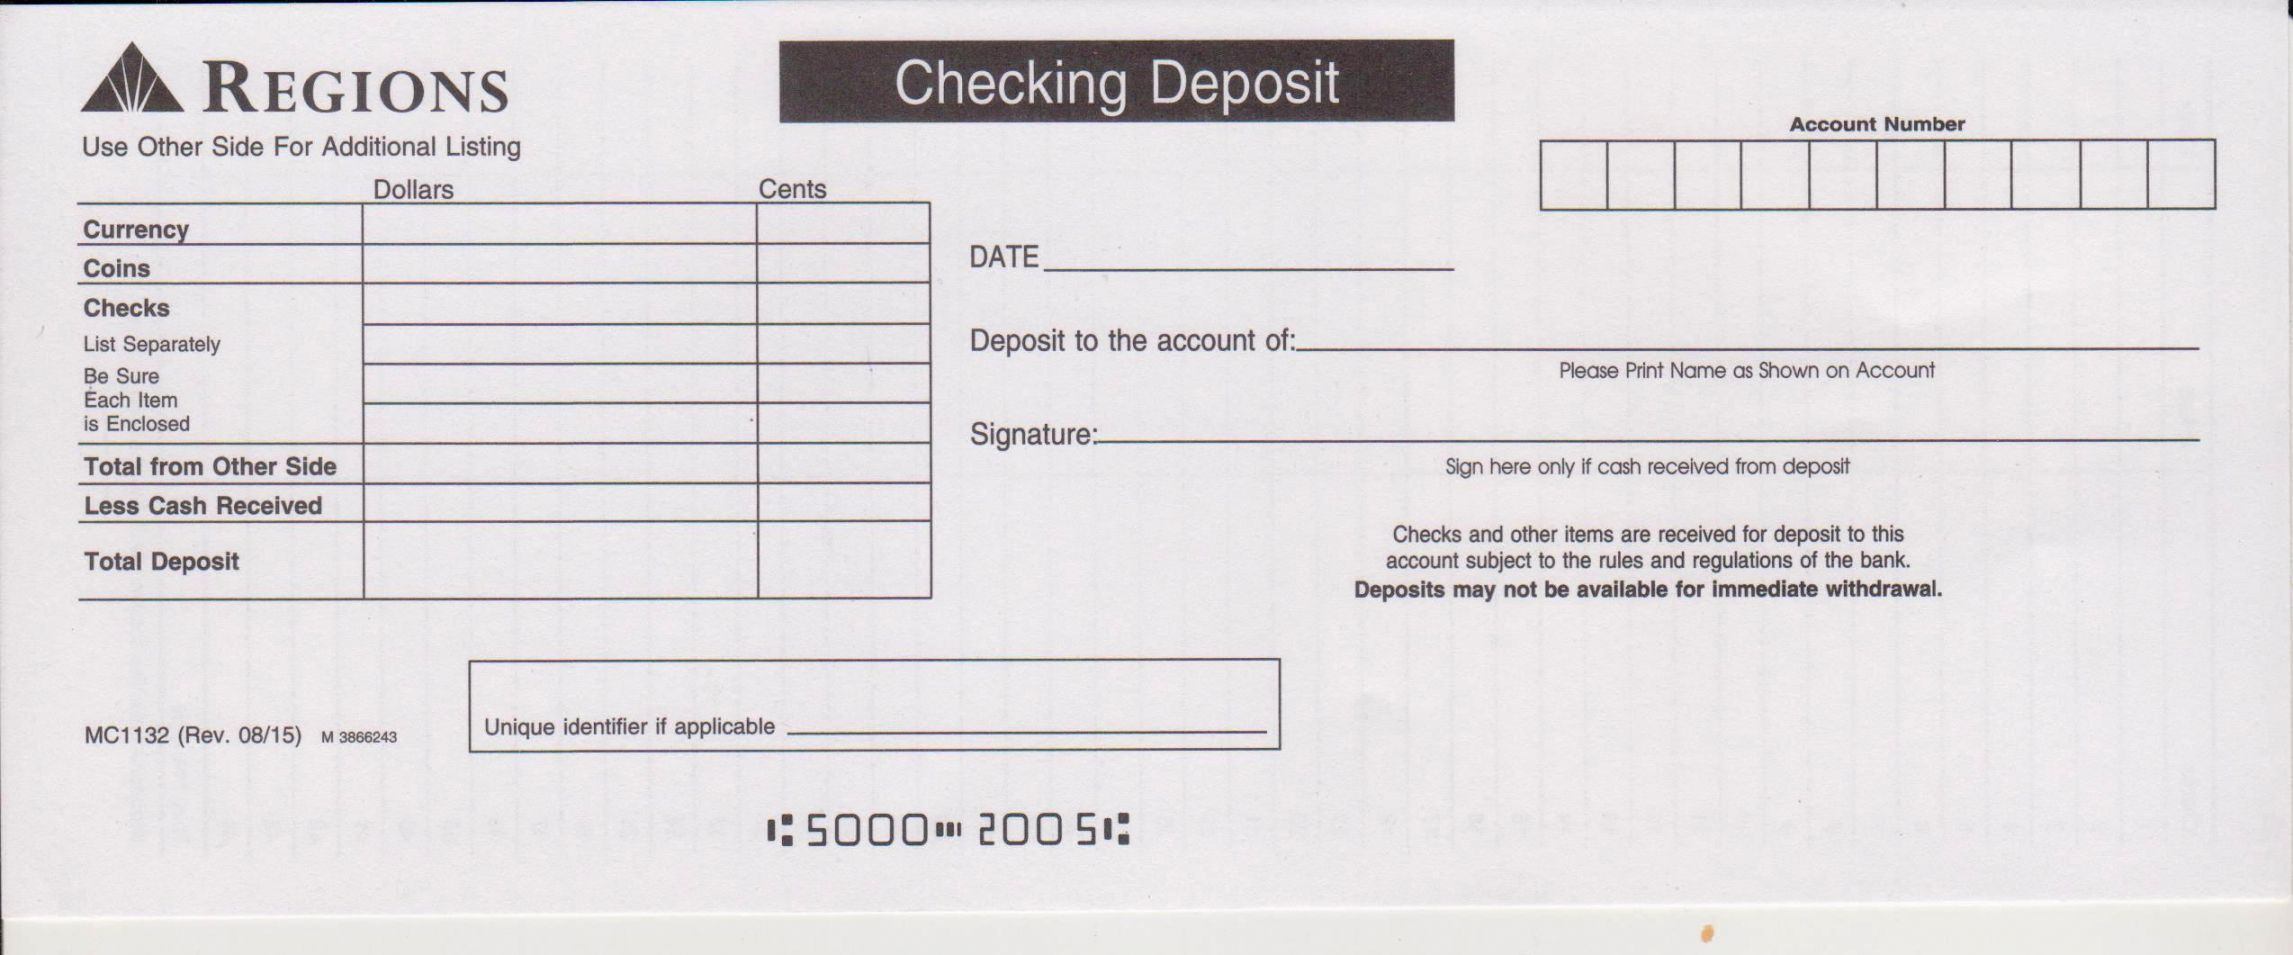 Get Our Image Of Bank Deposit Slip Template Deposit Bank Deposit Certificate Of Deposit